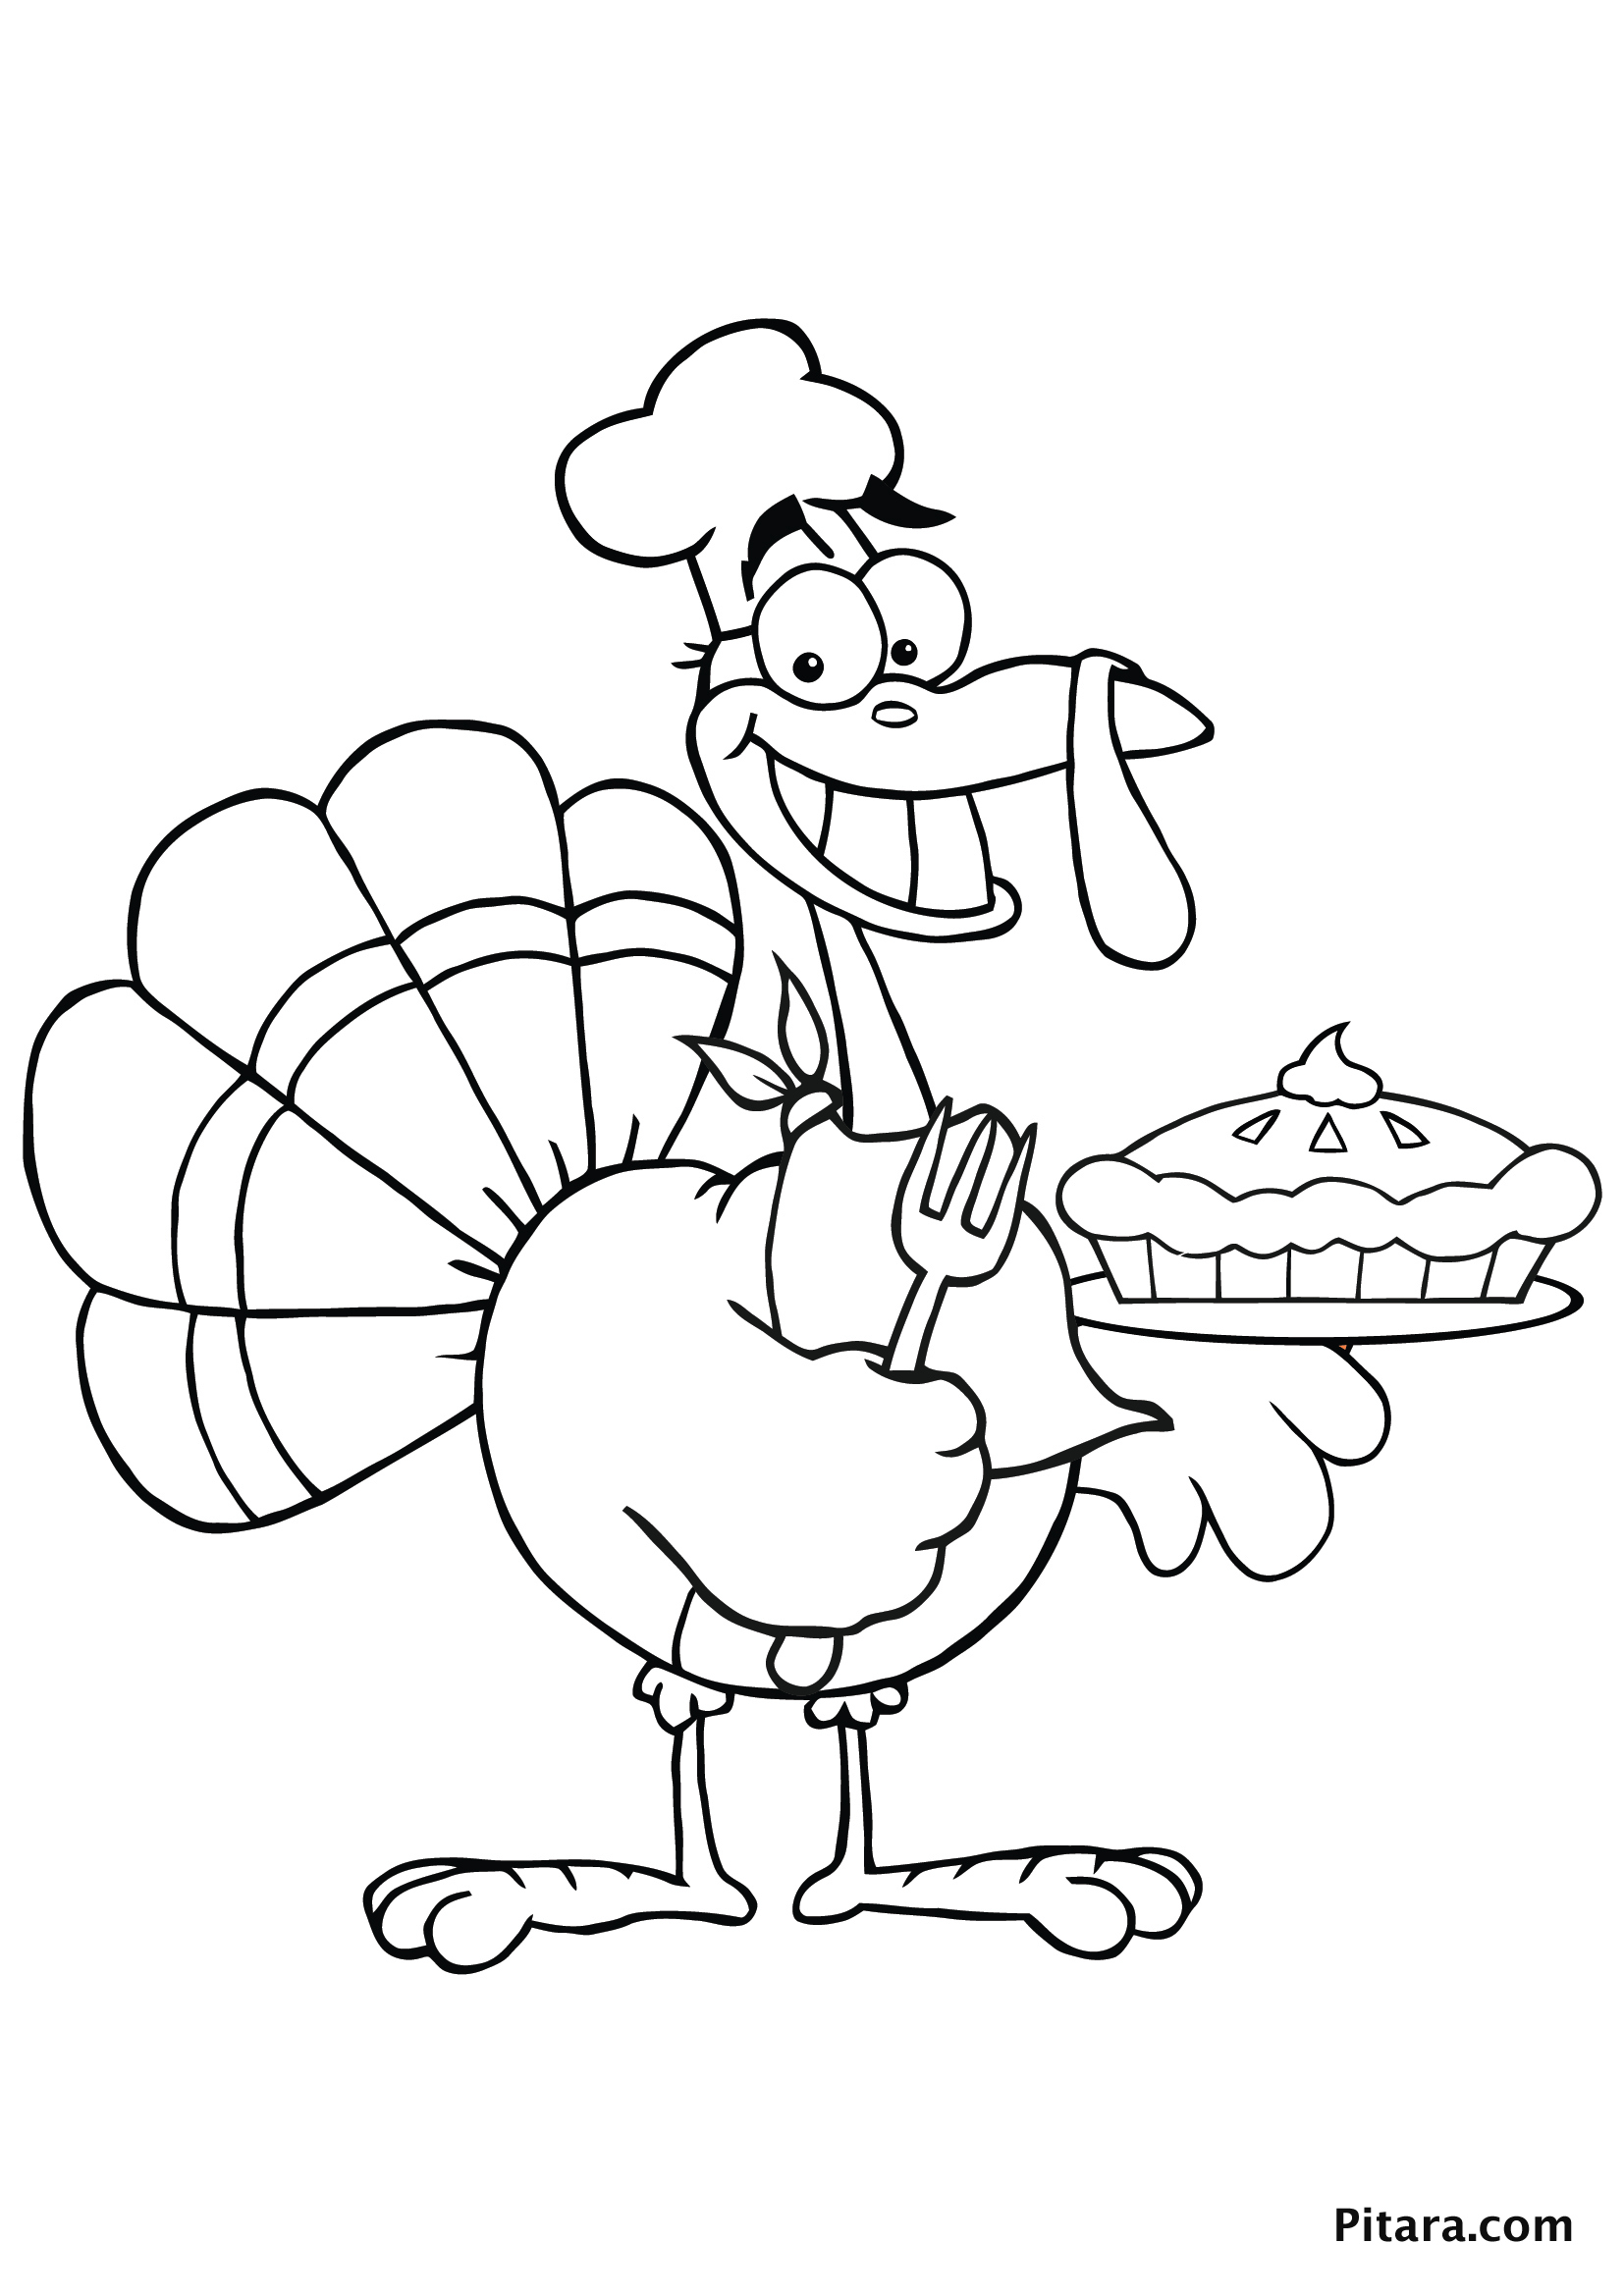 turkey color pages thanksgiving day printable coloring pages minnesota miranda color turkey pages